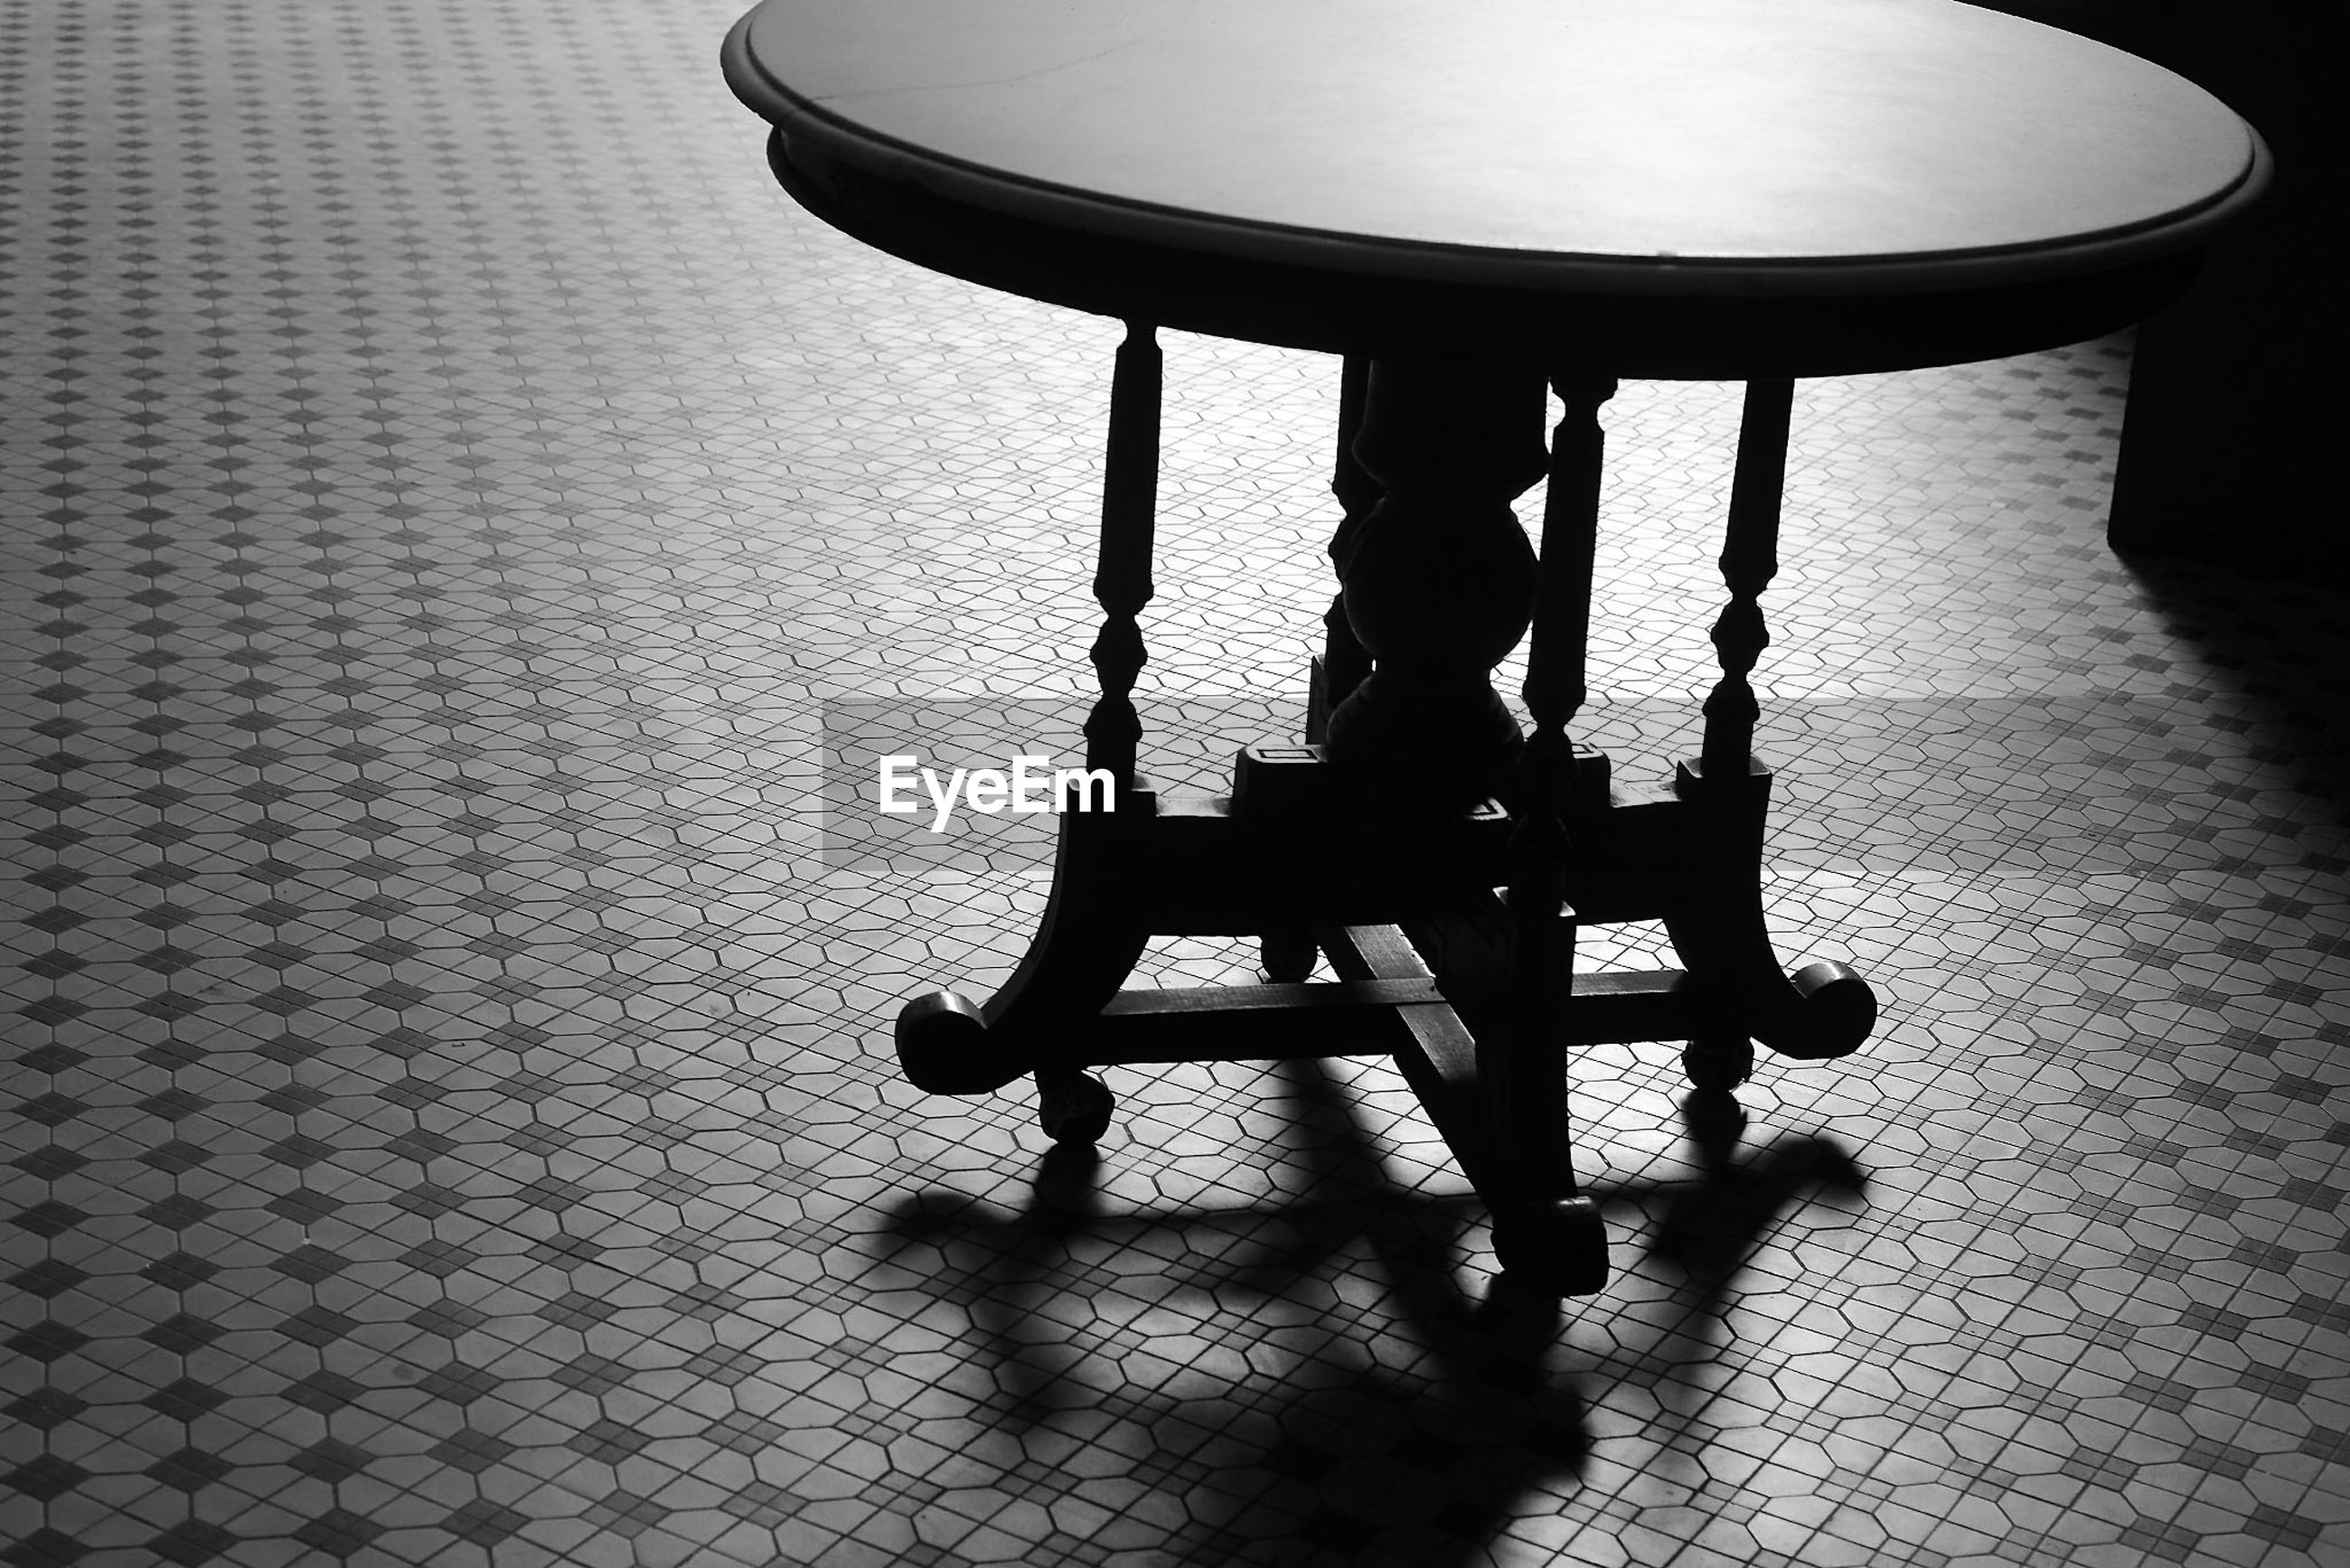 Table on tiled floor at home